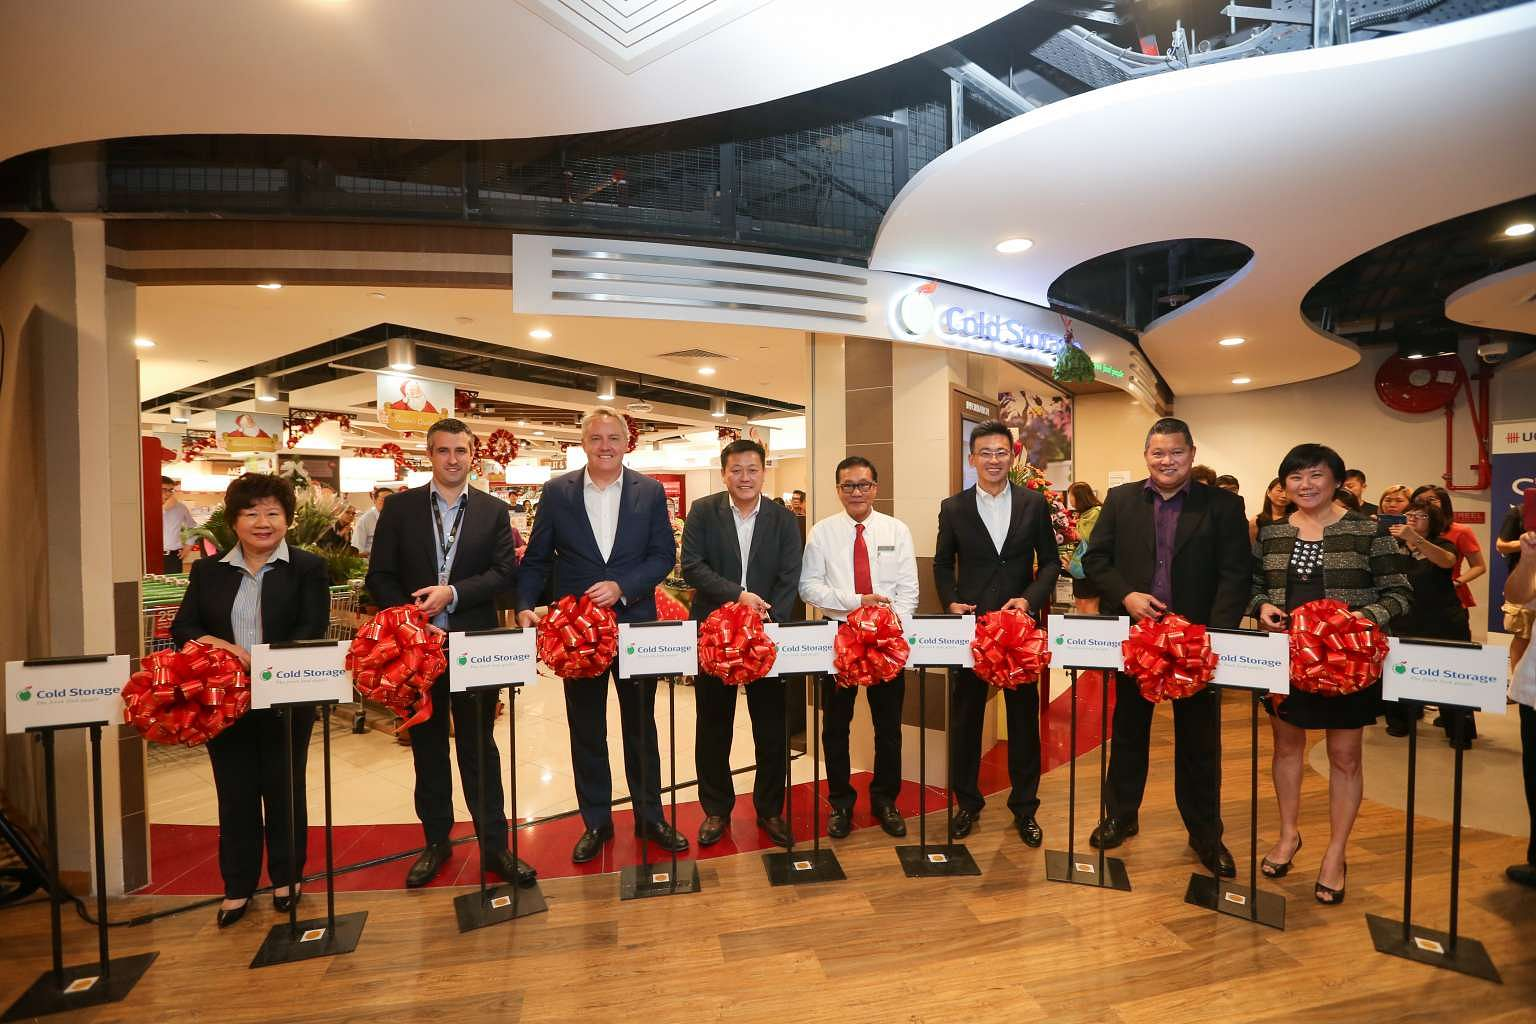 Cold Storage Flagship Reopens At The Centrepoint Singapore News